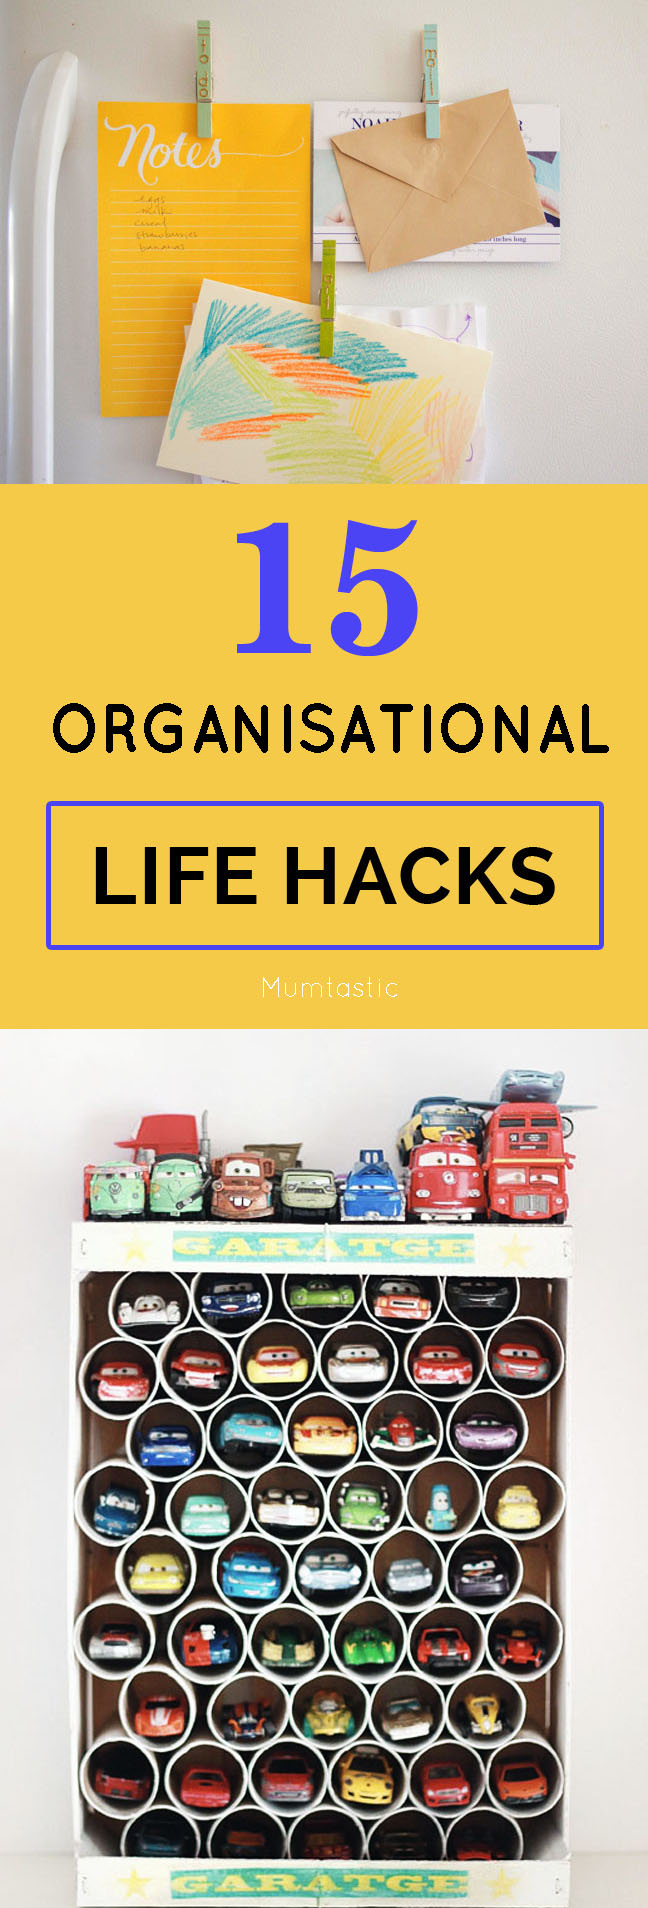 15 Organisational Life Hacks